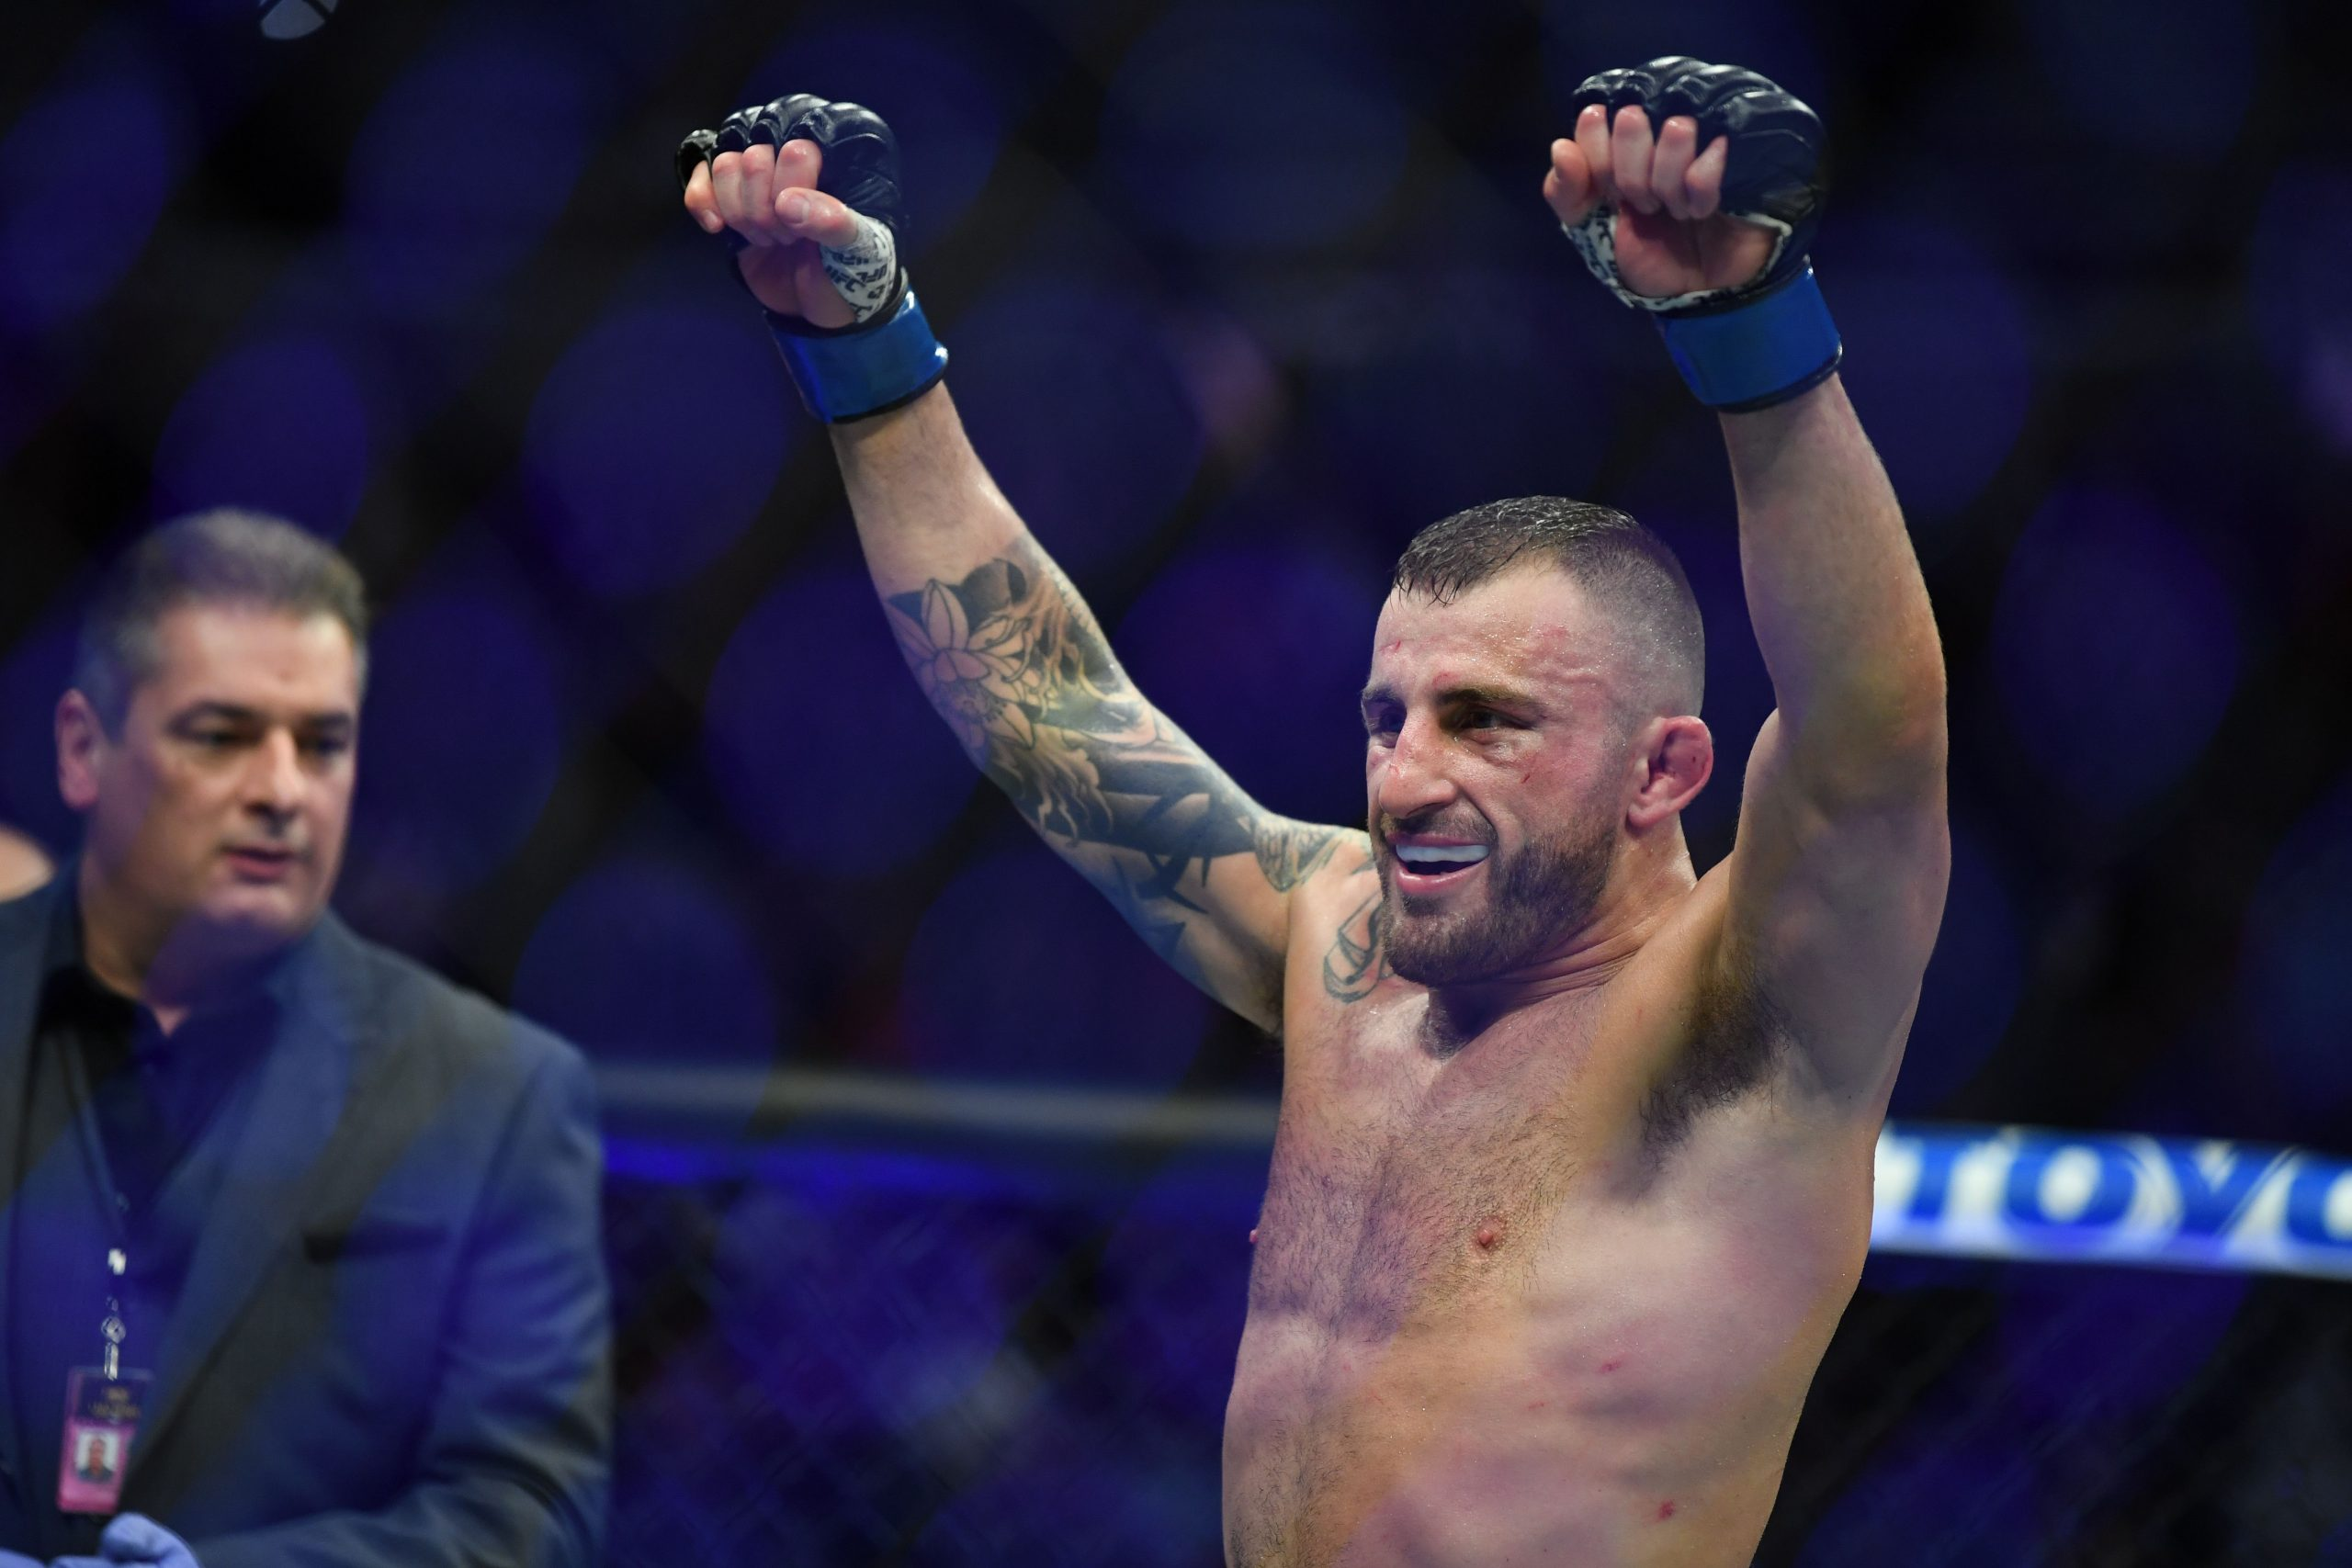 Dec 14, 2019; Las Vegas, NV, USA; Alexander Volkanovski (blue gloves) reacts after a bout against Max Holloway (not pictured) during UFC 245 at T-Mobile Arena.